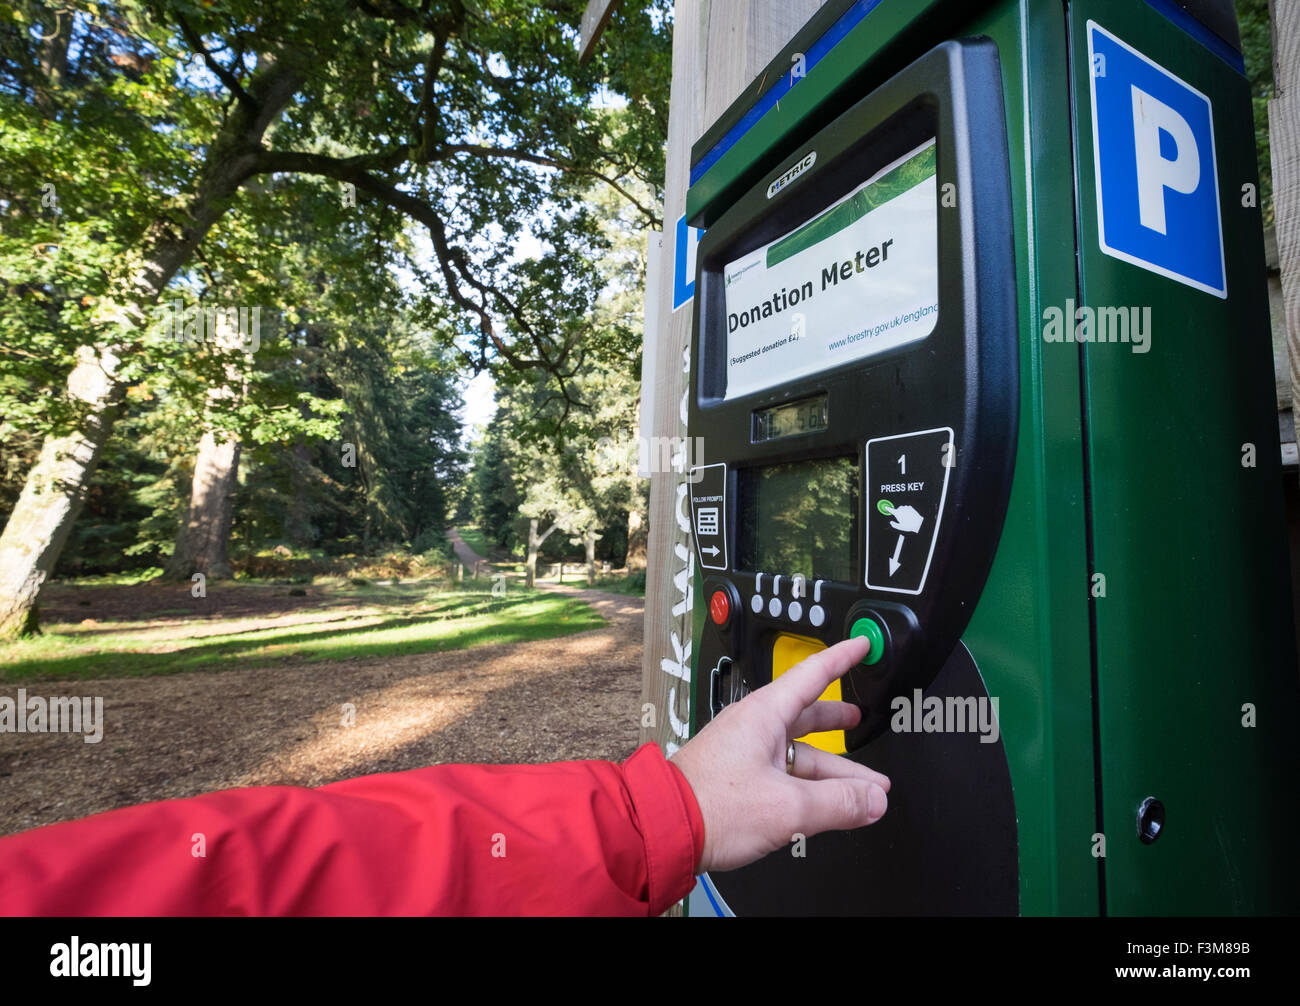 Donation parking machine in the New Forest National Park, Hampshire, UK - Stock Image